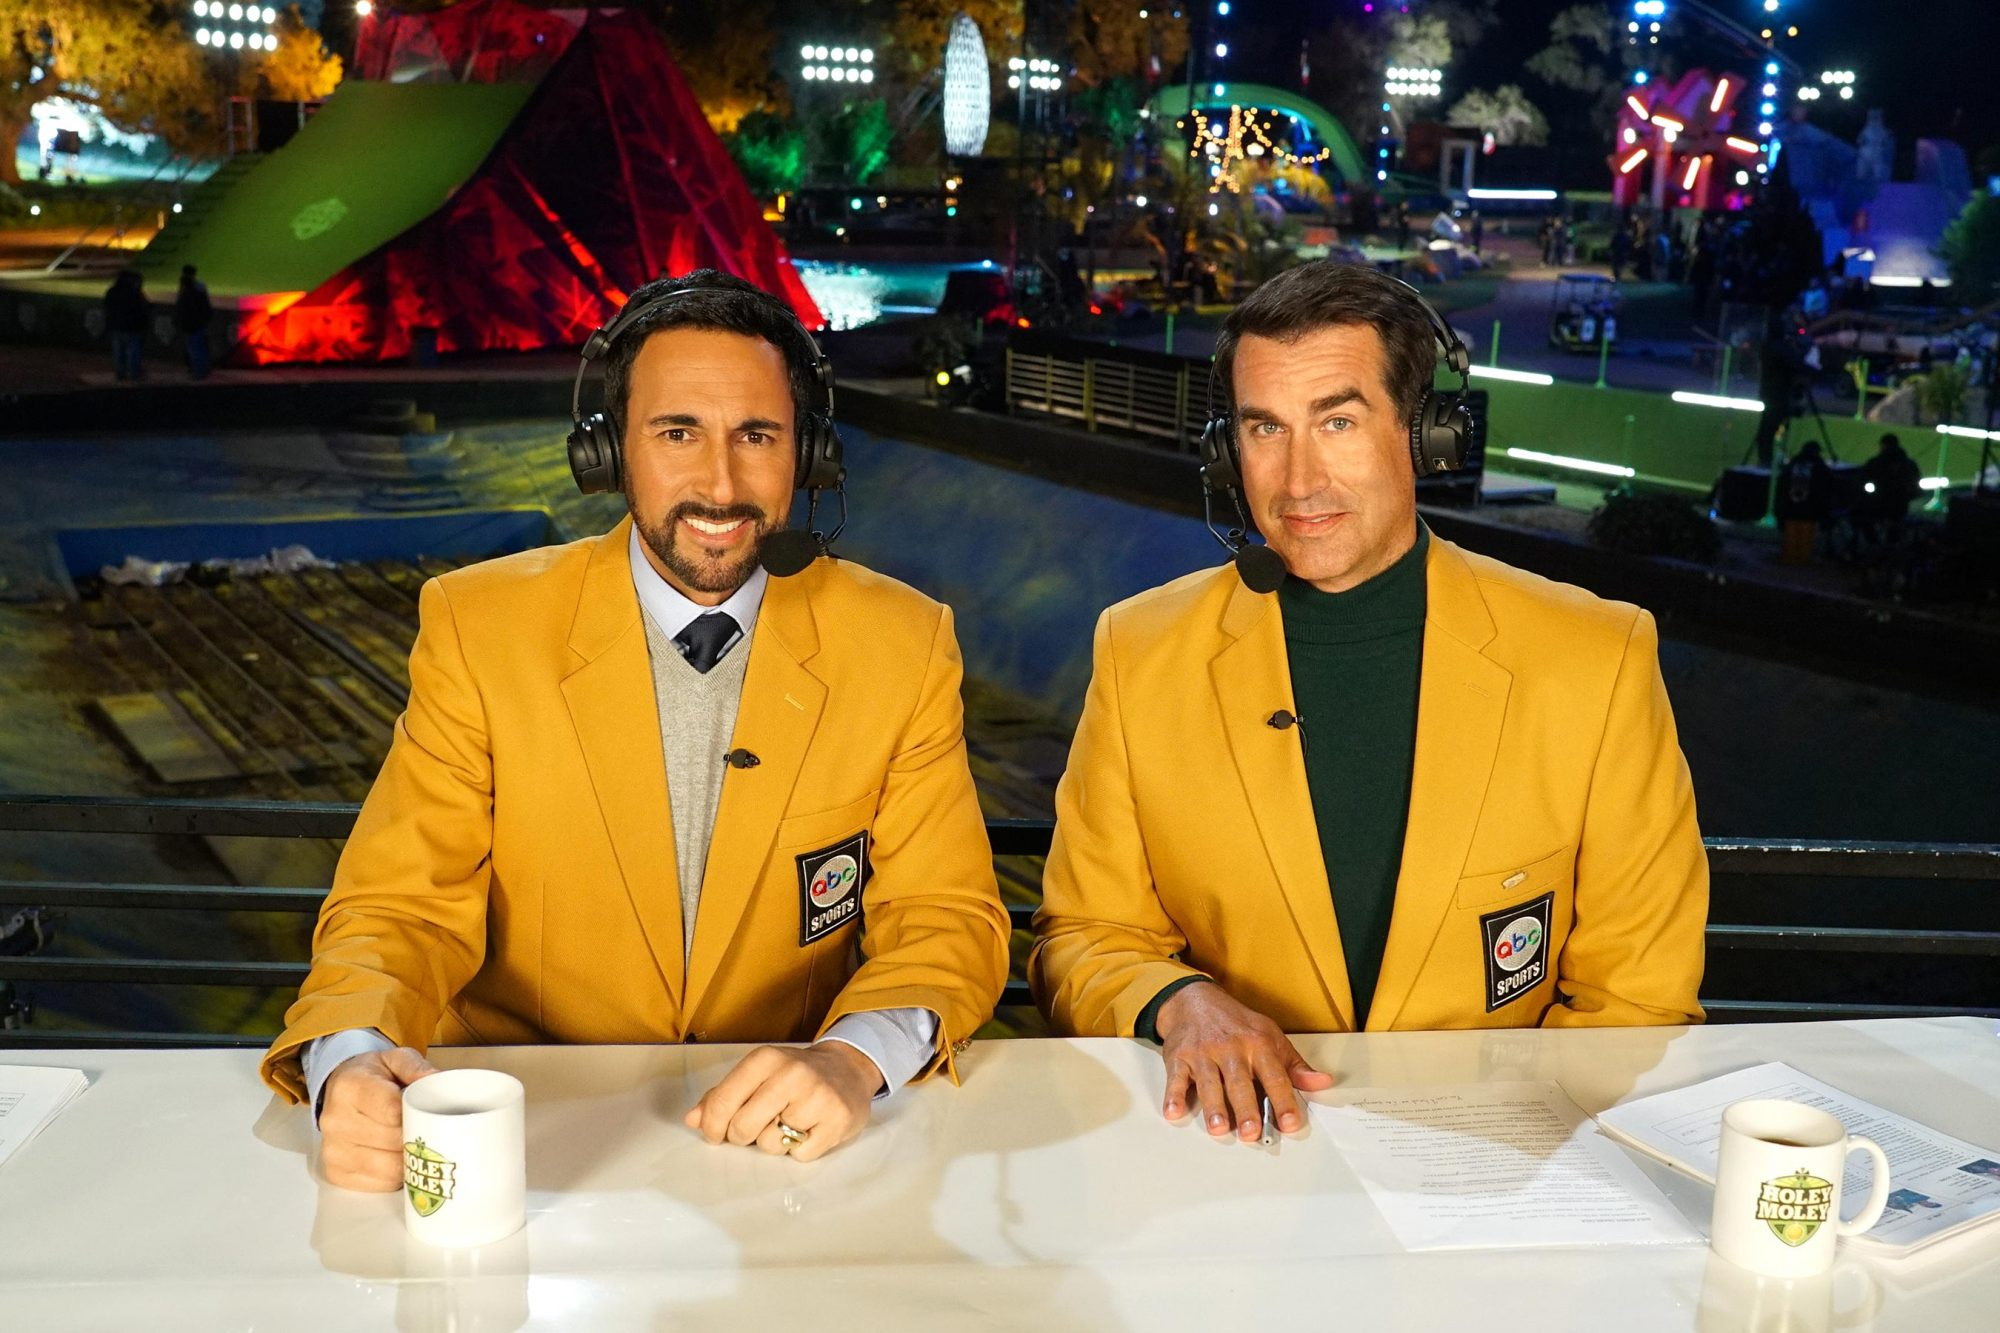 JOE TESSITORE, ROB RIGGLE